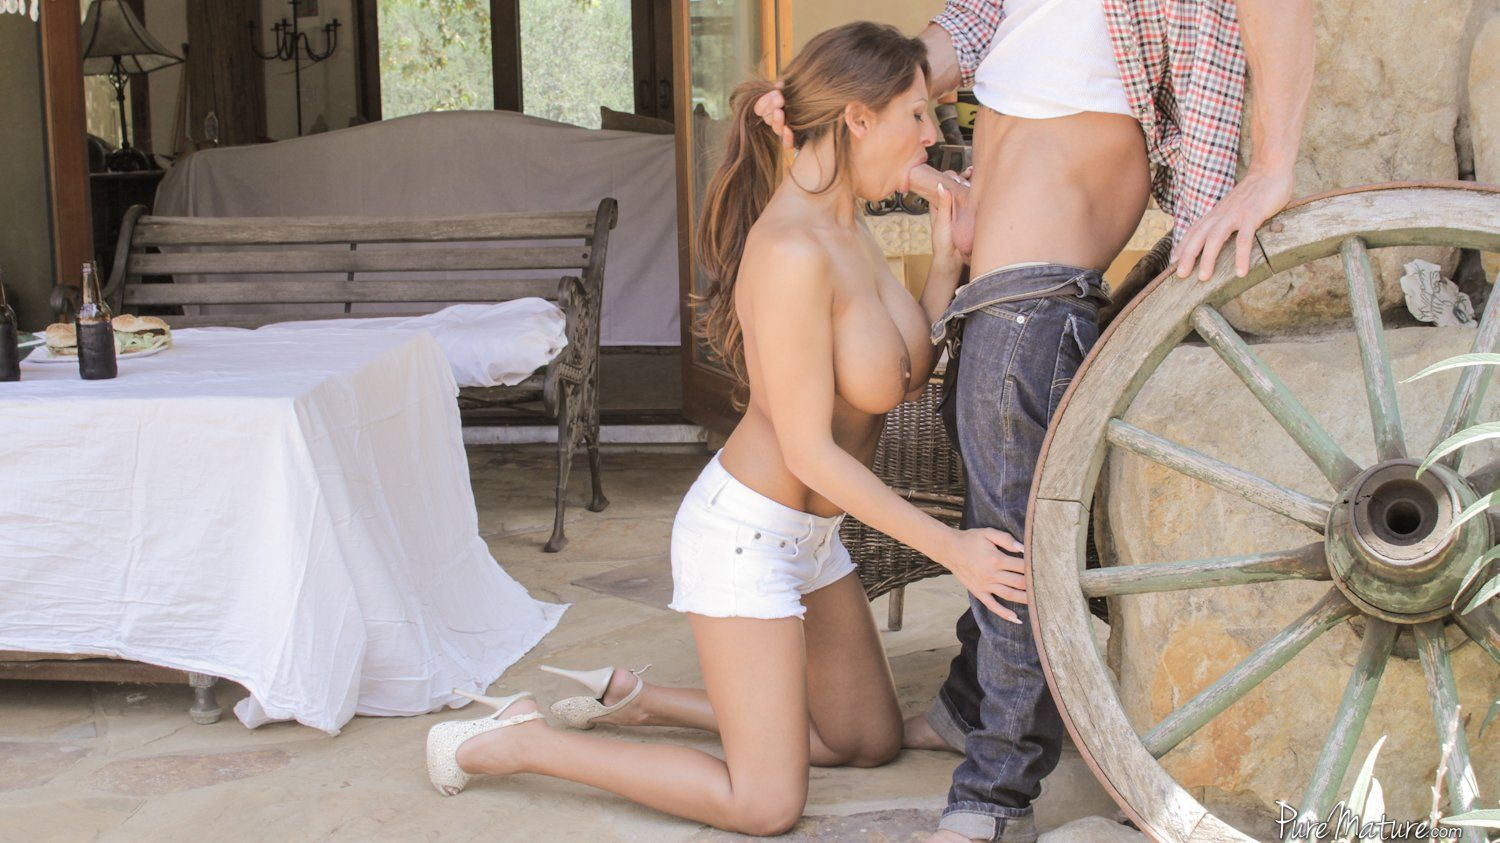 Alison Star Nude girls barn yard sex . hot nude photos. comments: 2